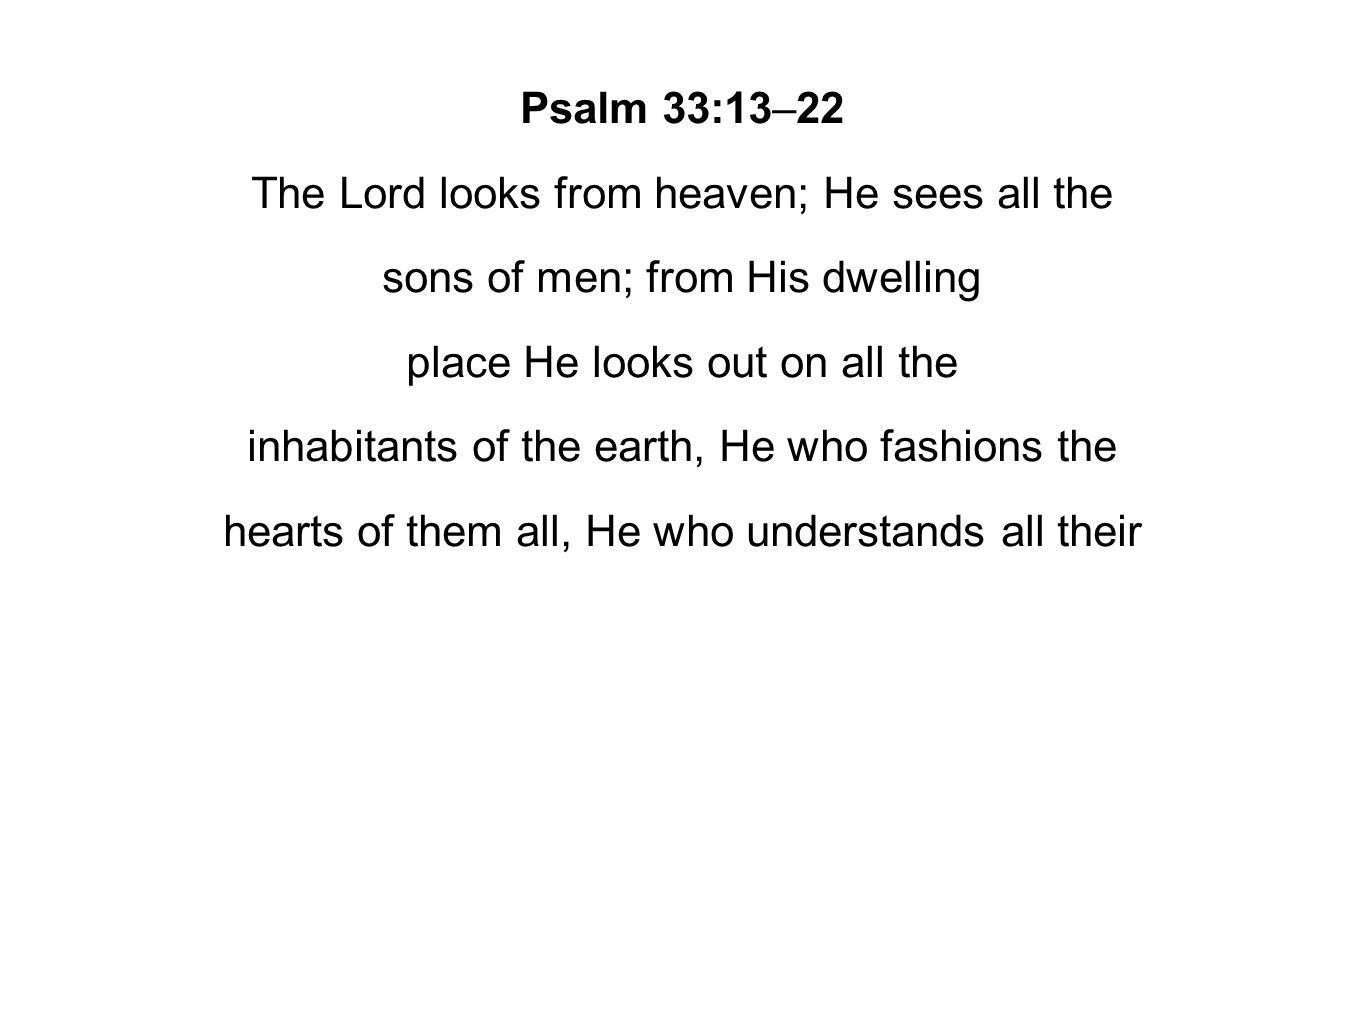 Psalm 33:13–22 The Lord looks from heaven; He sees all the sons of men; from His dwelling place He looks out on all the inhabitants of the earth, He who fashions the hearts of them all, He who understands all their